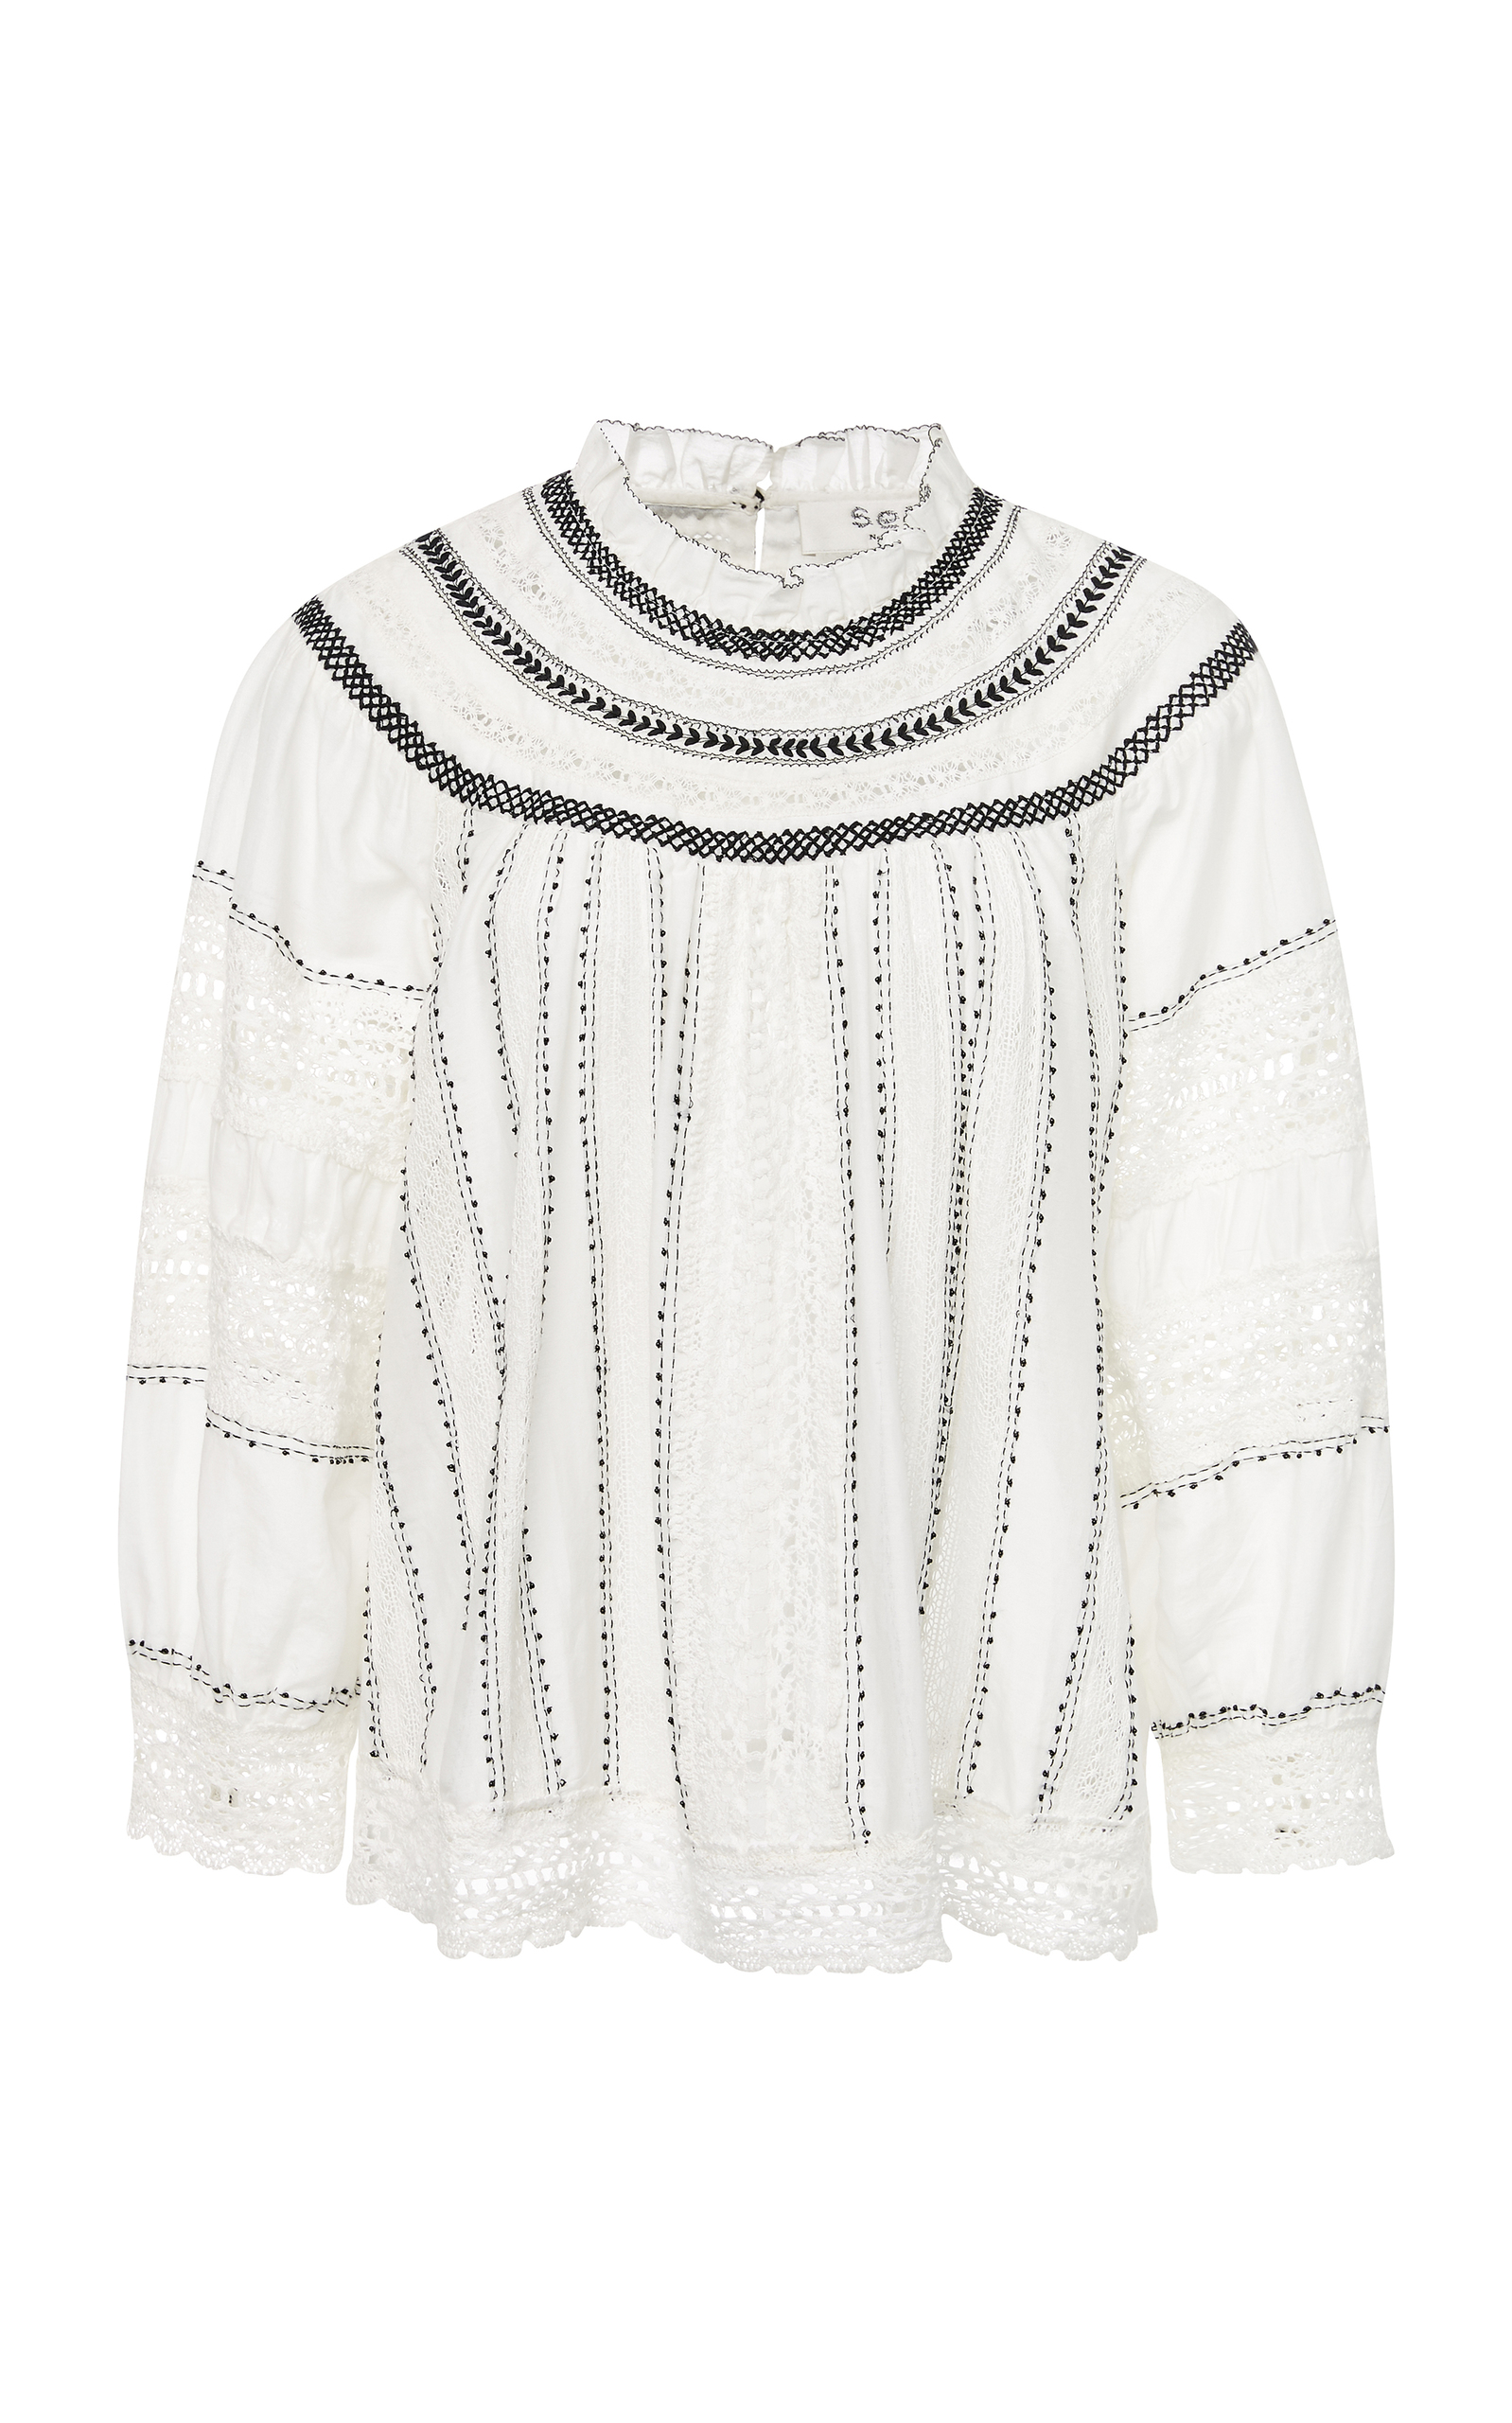 9632597ddd9735 Louisa Embroidery Long-Sleeved Peasant Top by Sea | Moda Operandi